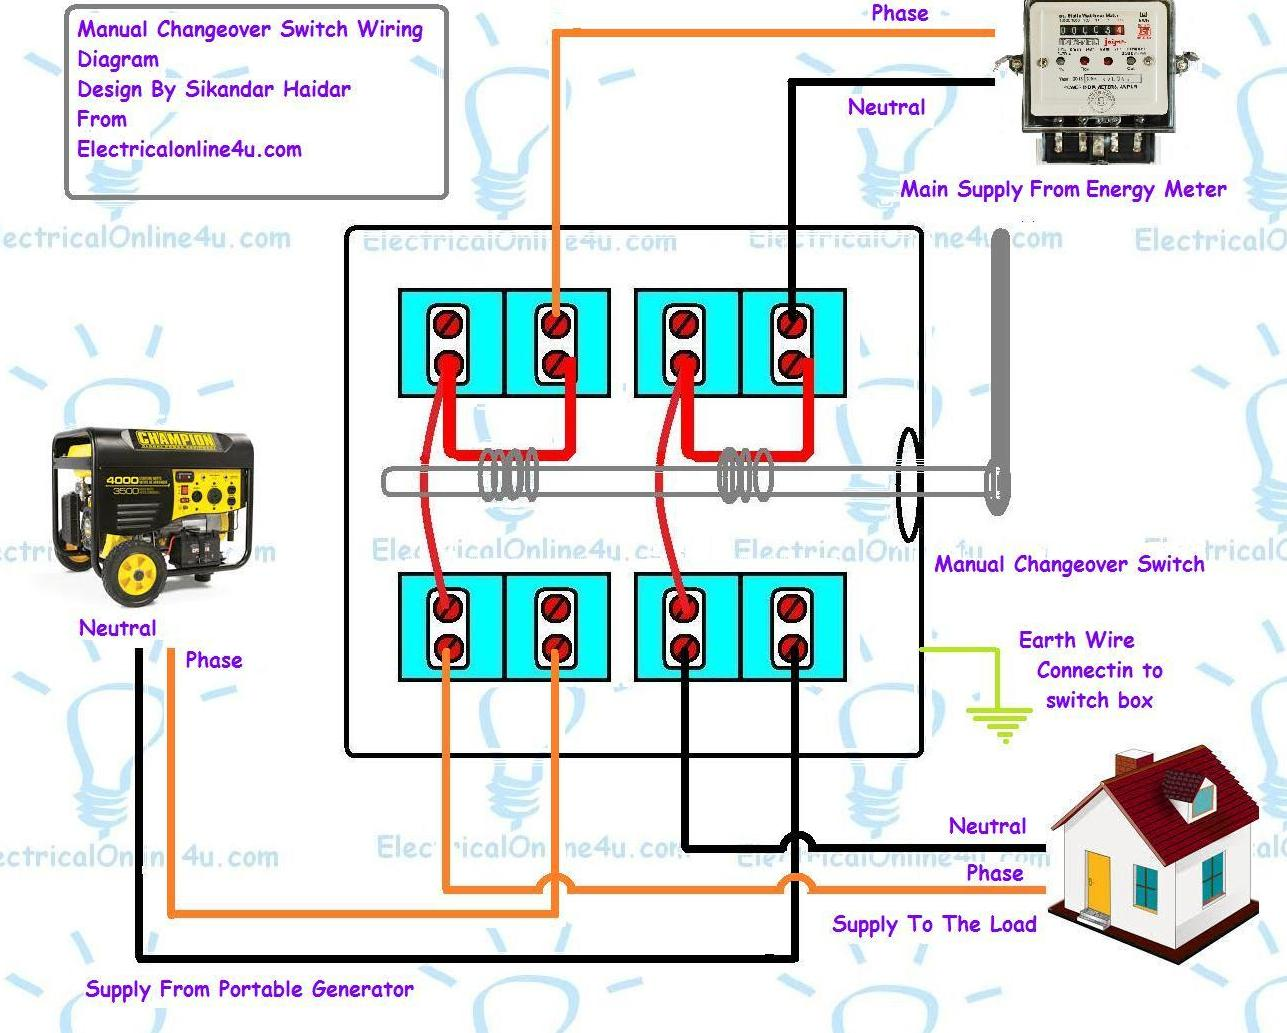 Generator Wiring Diagram and Electrical SchematicsElectronics and Schematic Circuit Diagrams